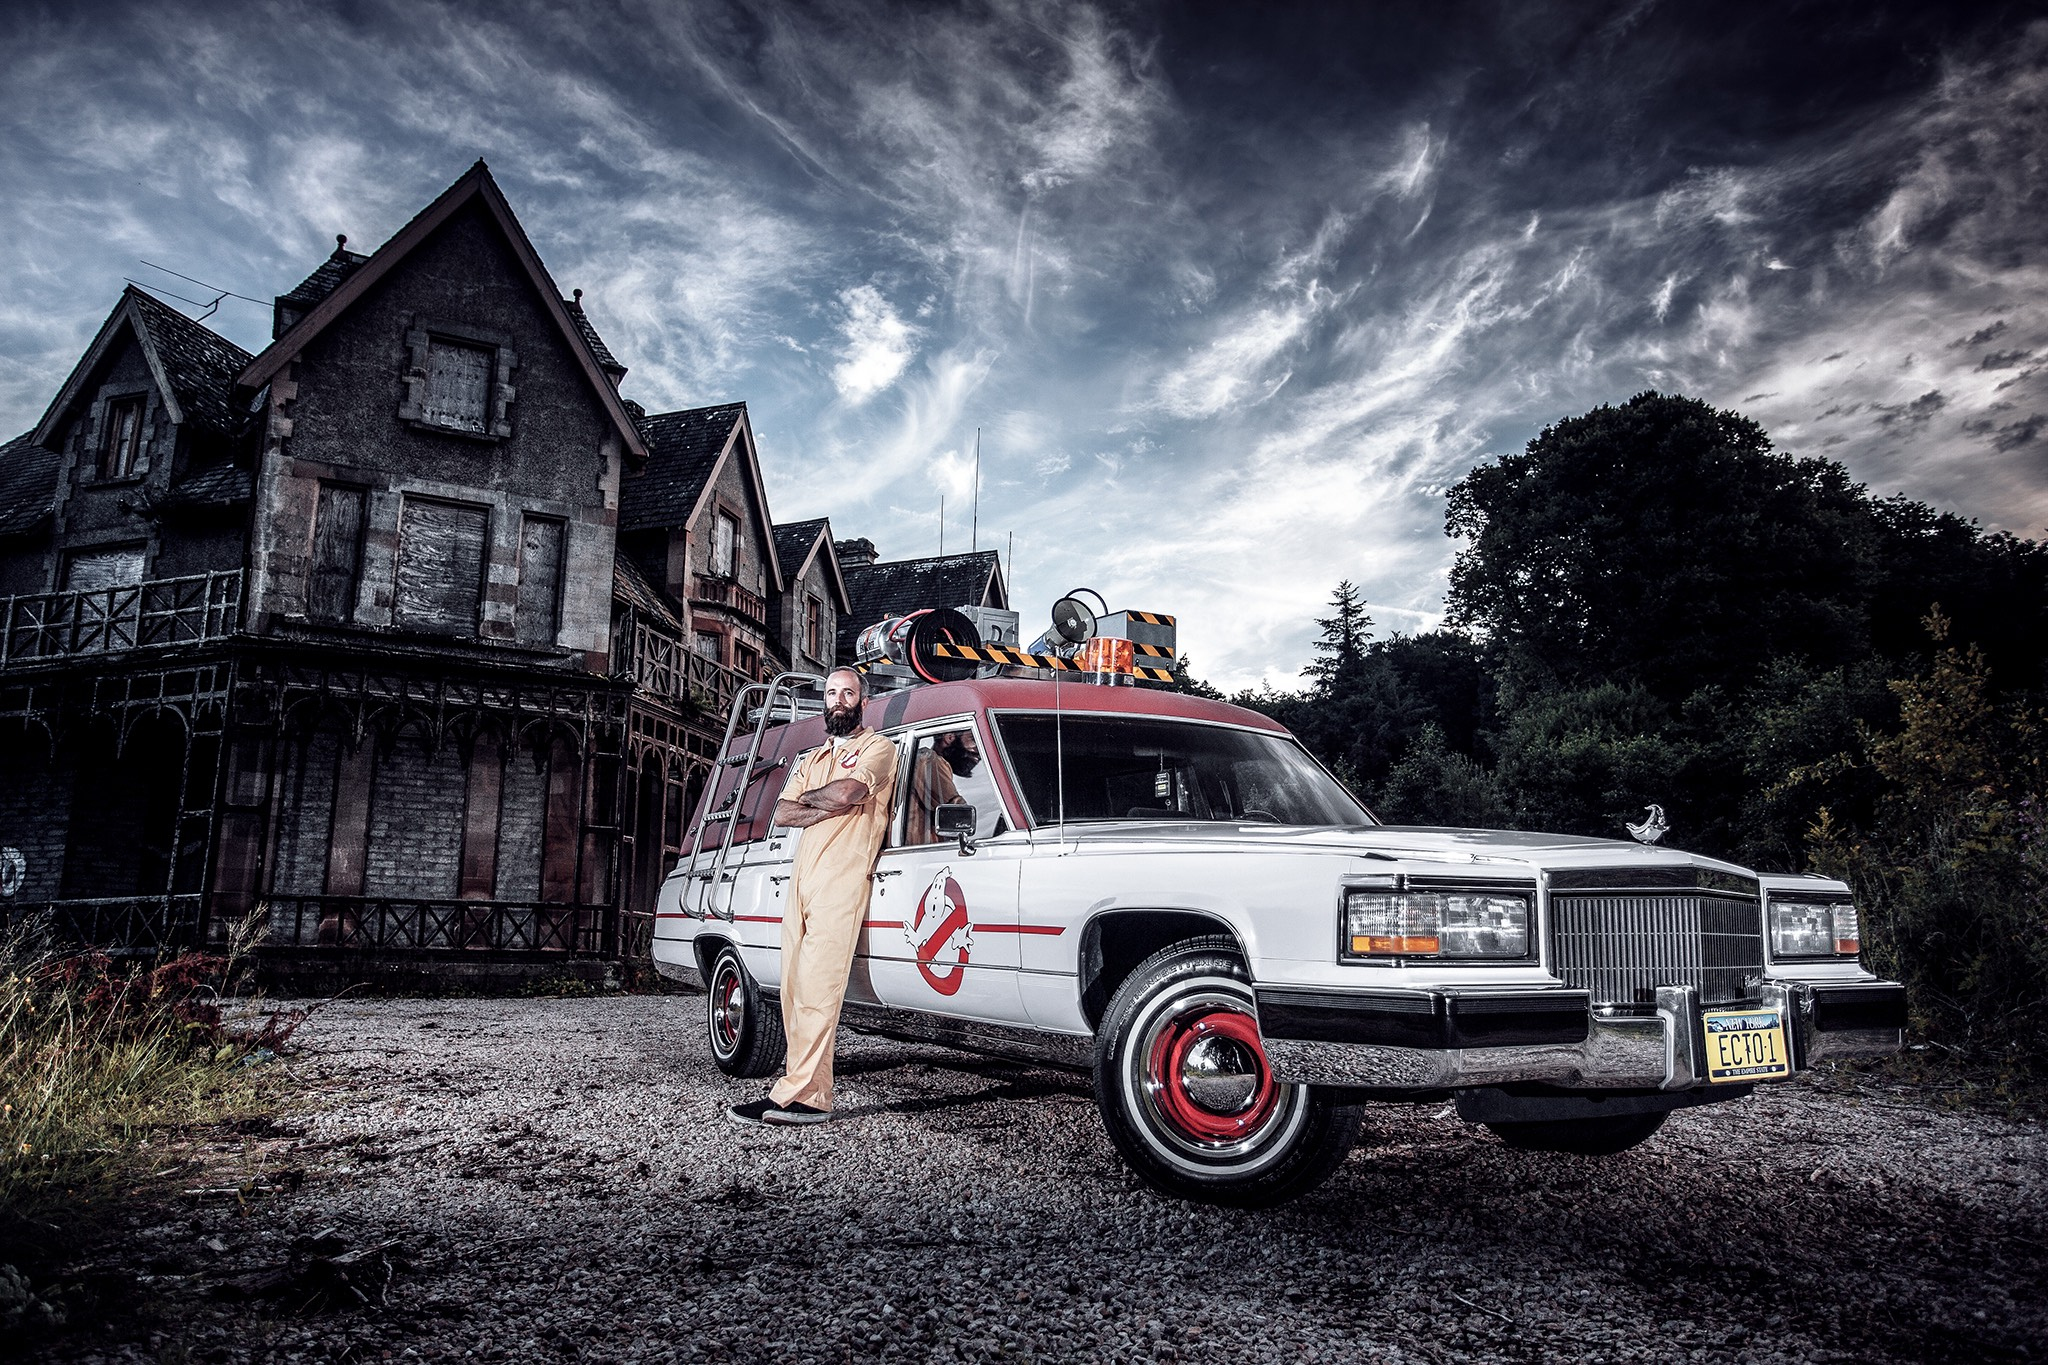 American Hearse Converted Into Ghostbusters Ecto 1